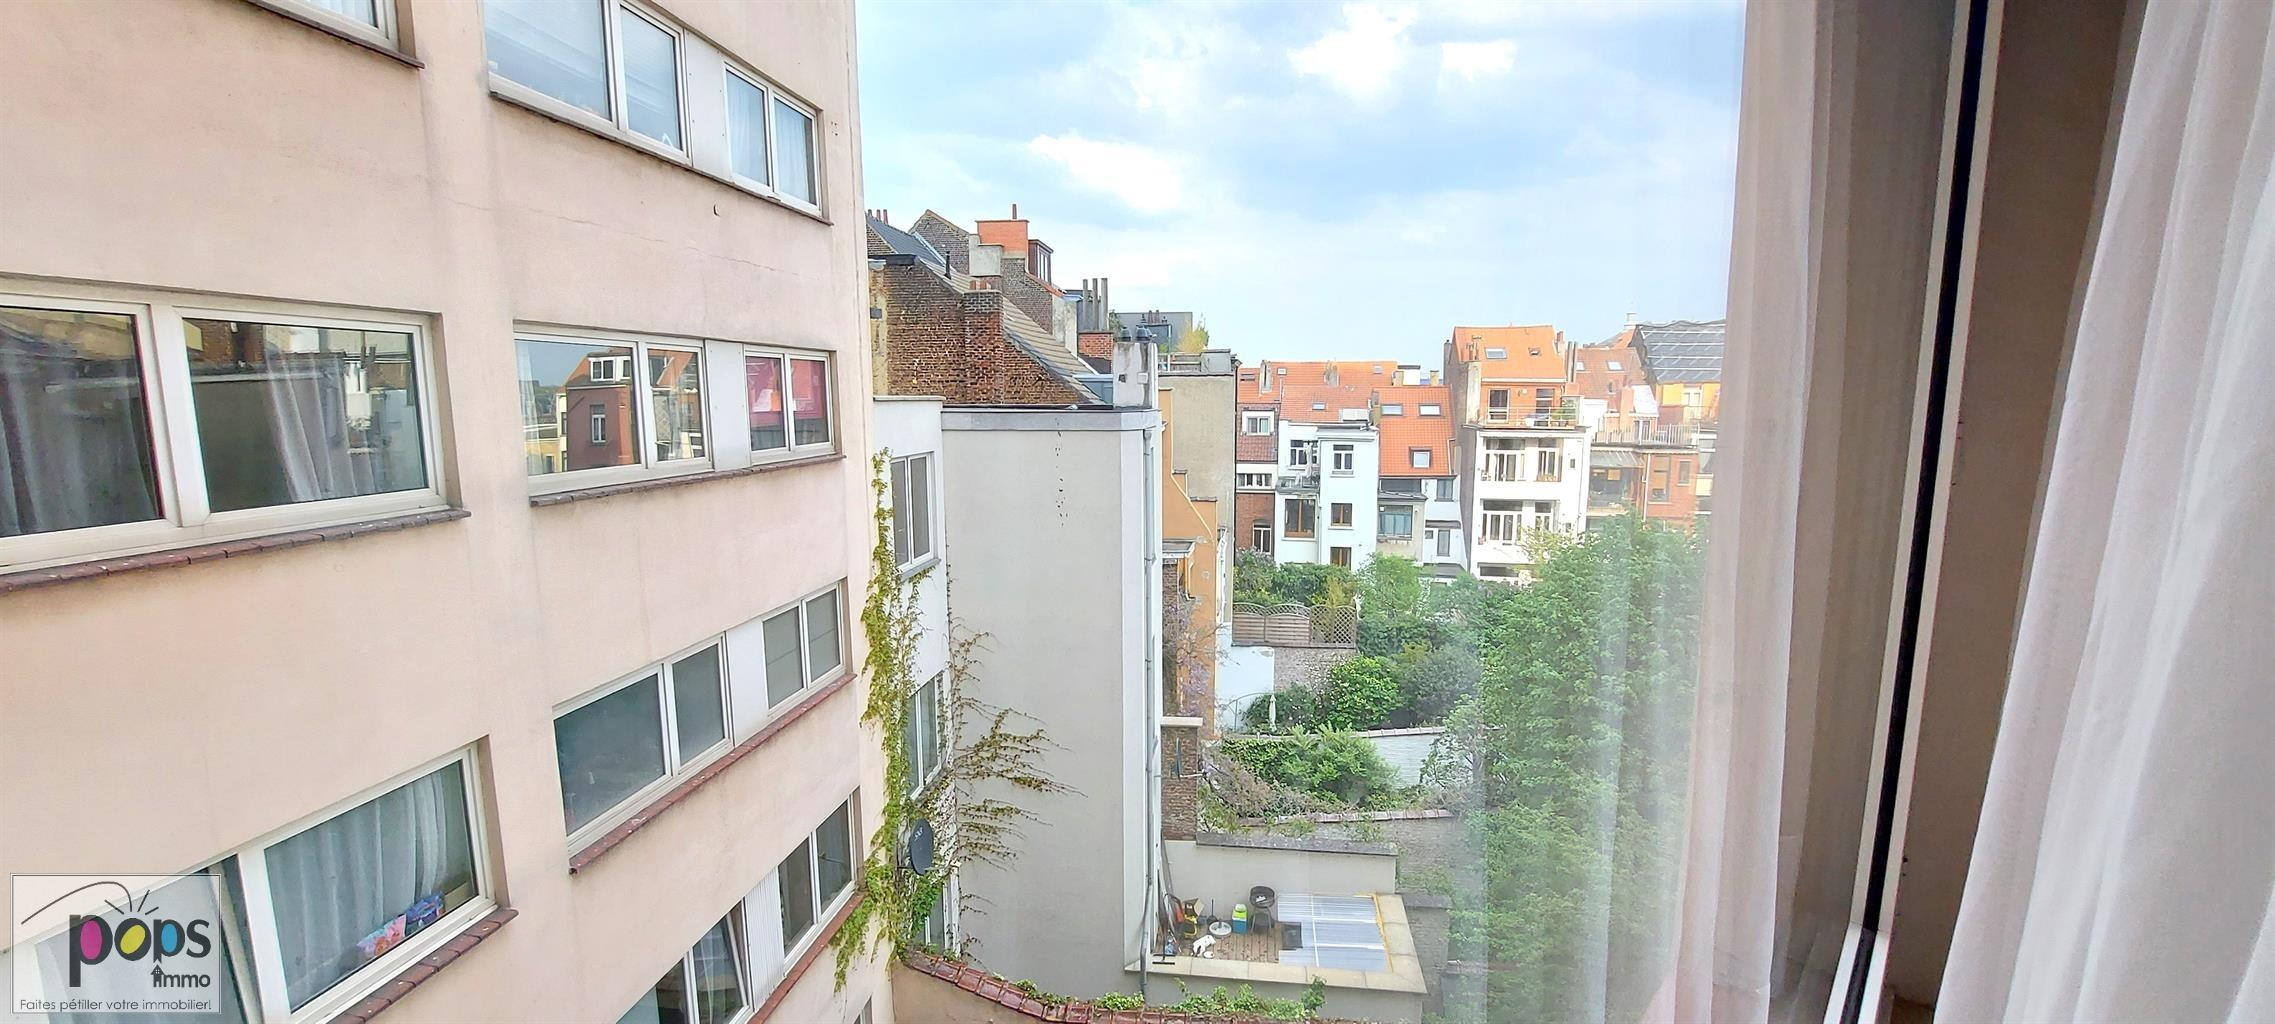 Appartement - Forest - #4405929-15